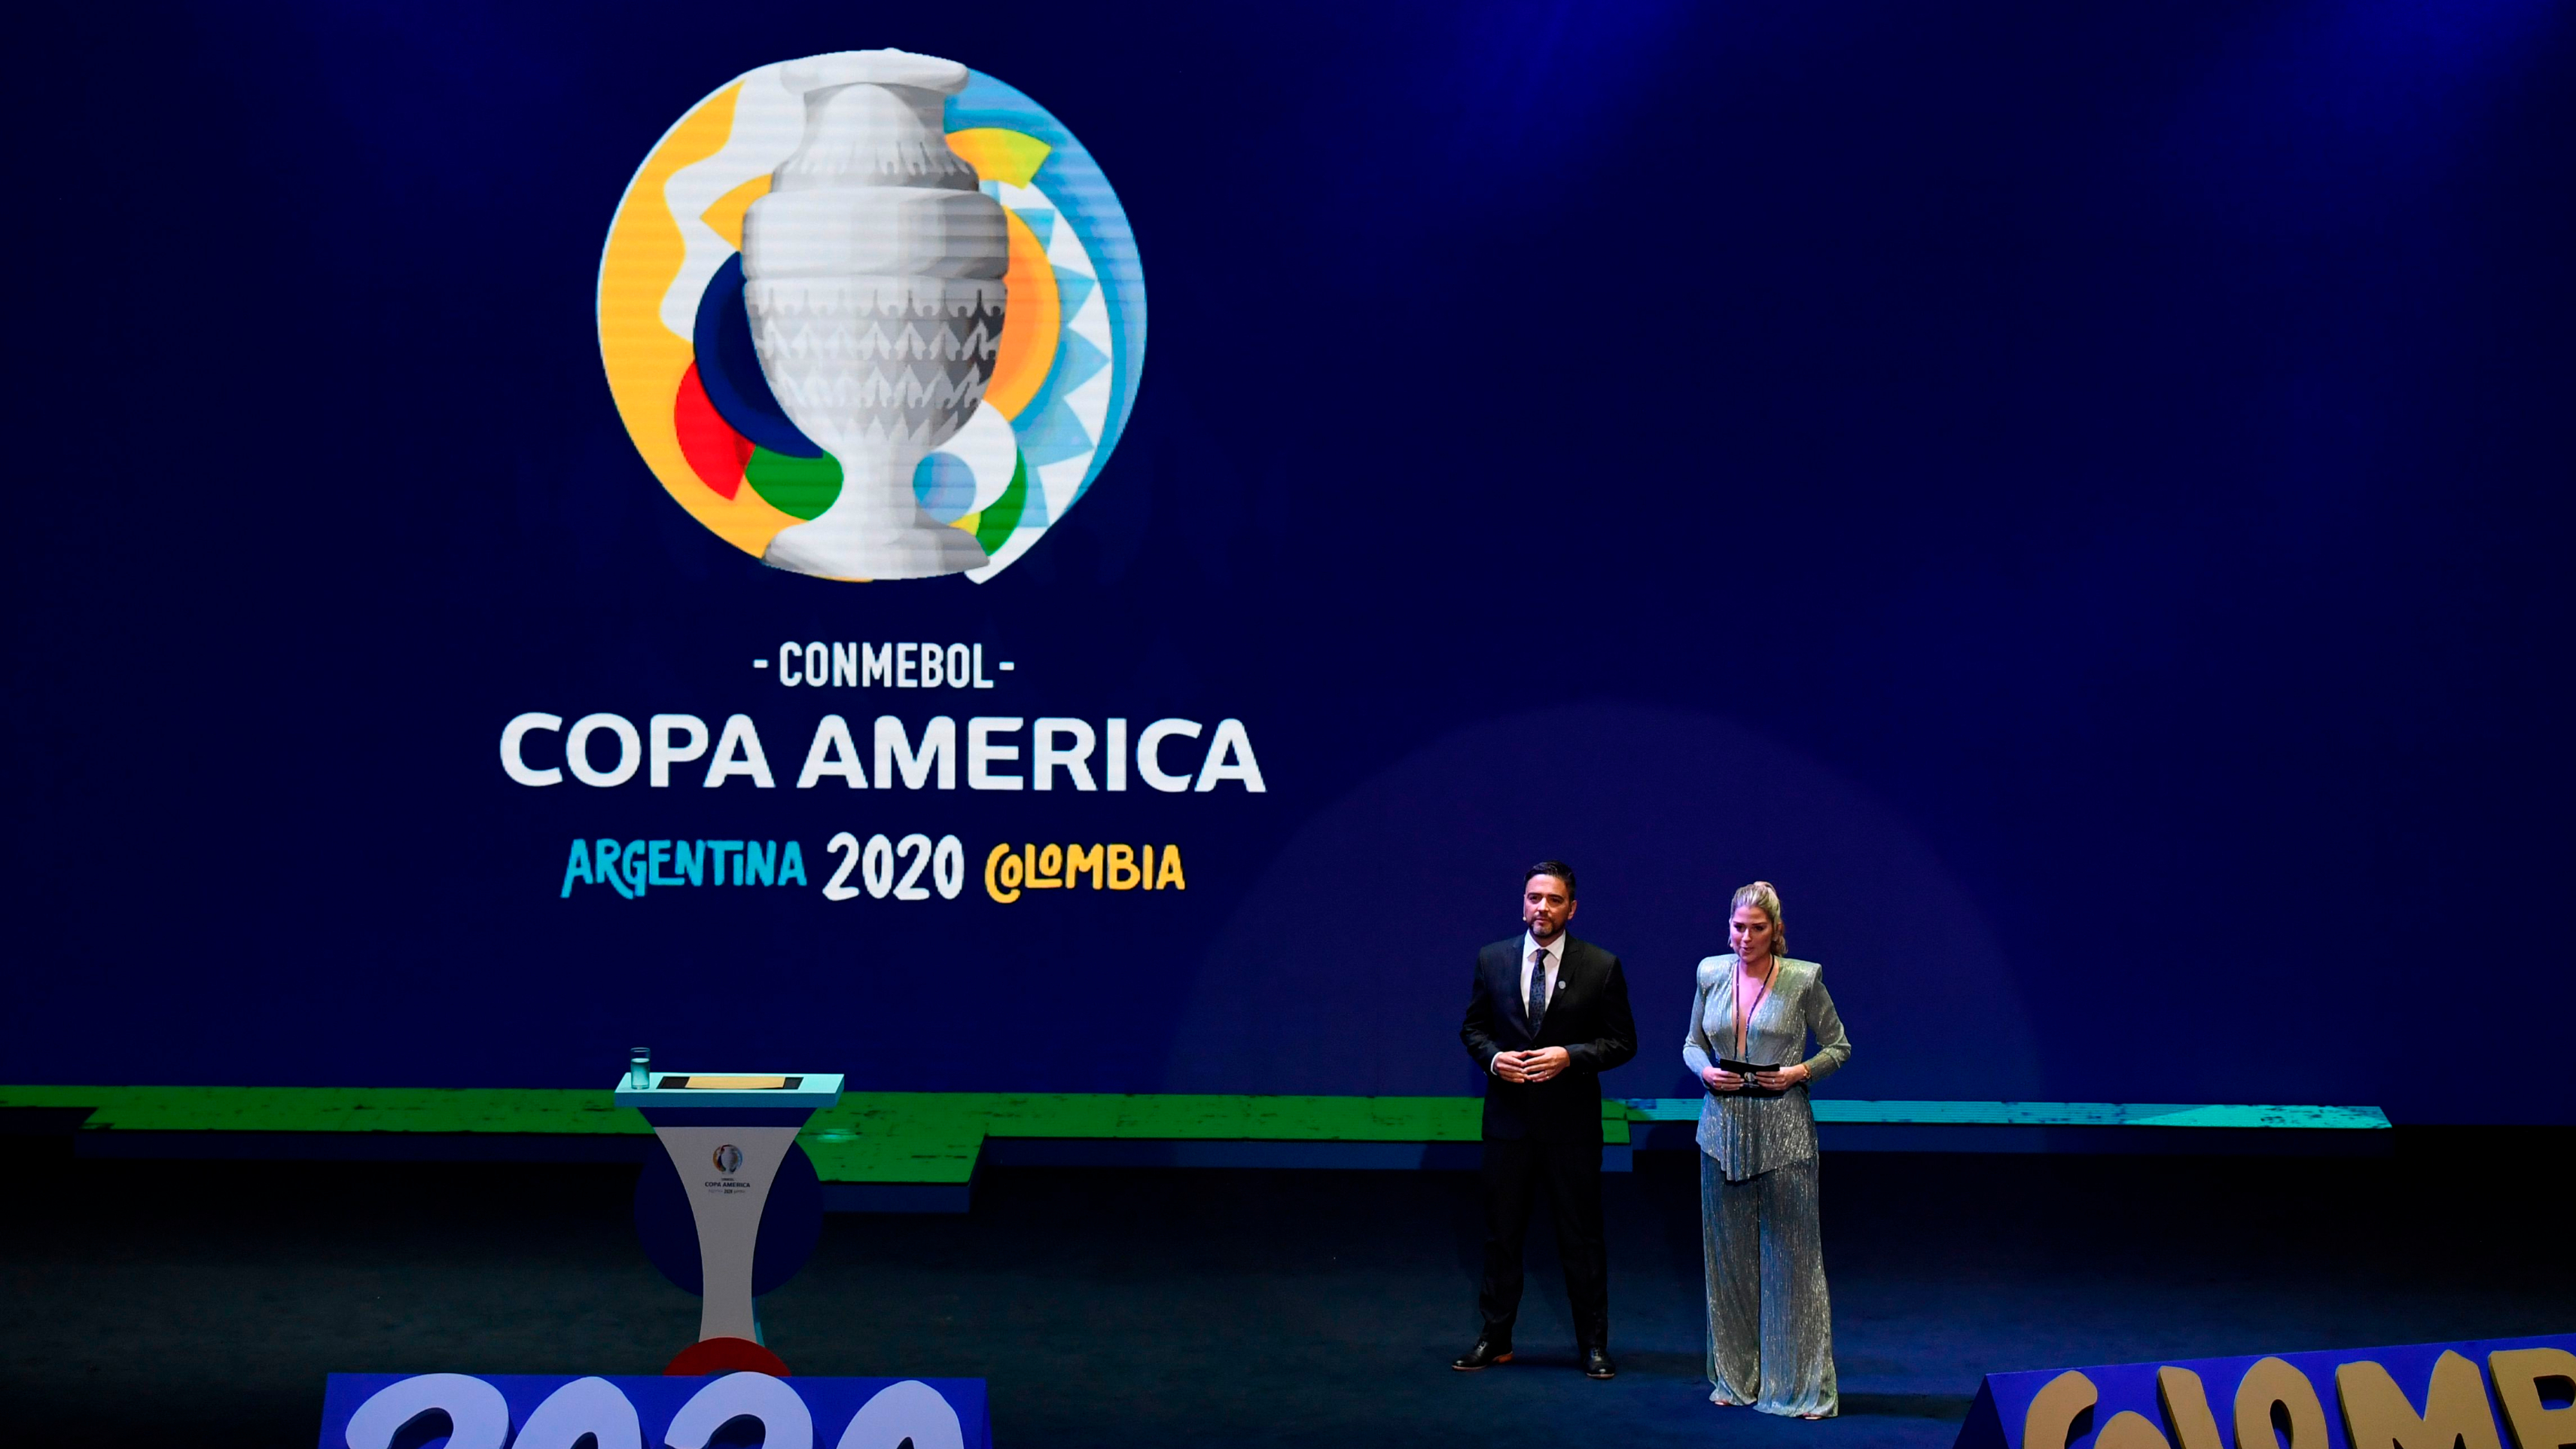 Copa America draw reveals path to glory